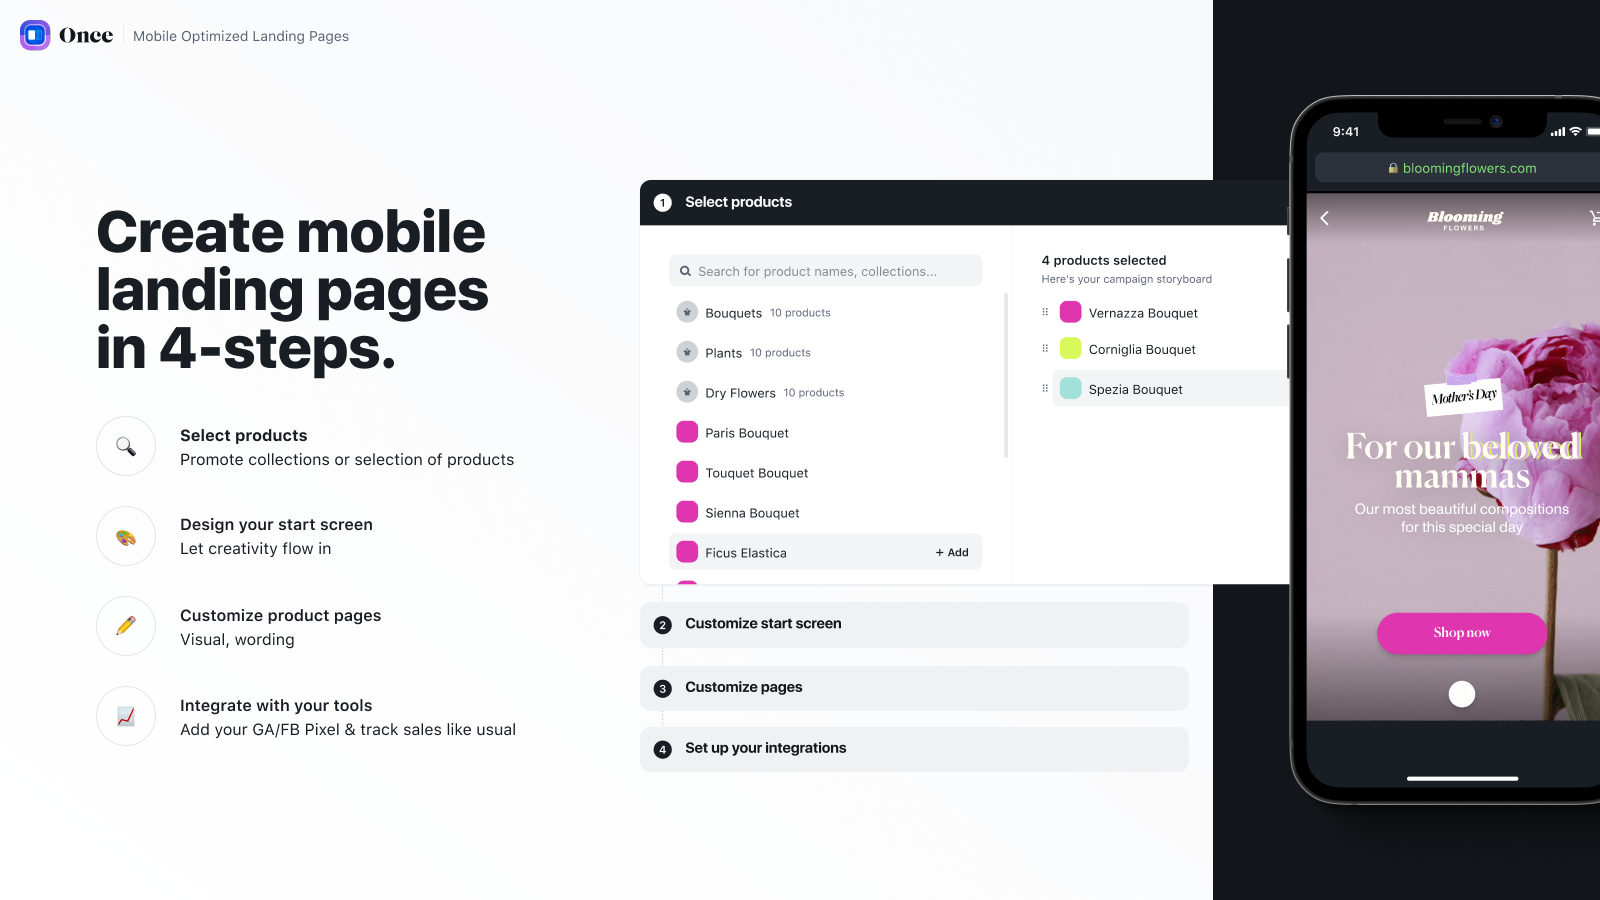 create mobile landing pages in 4-steps